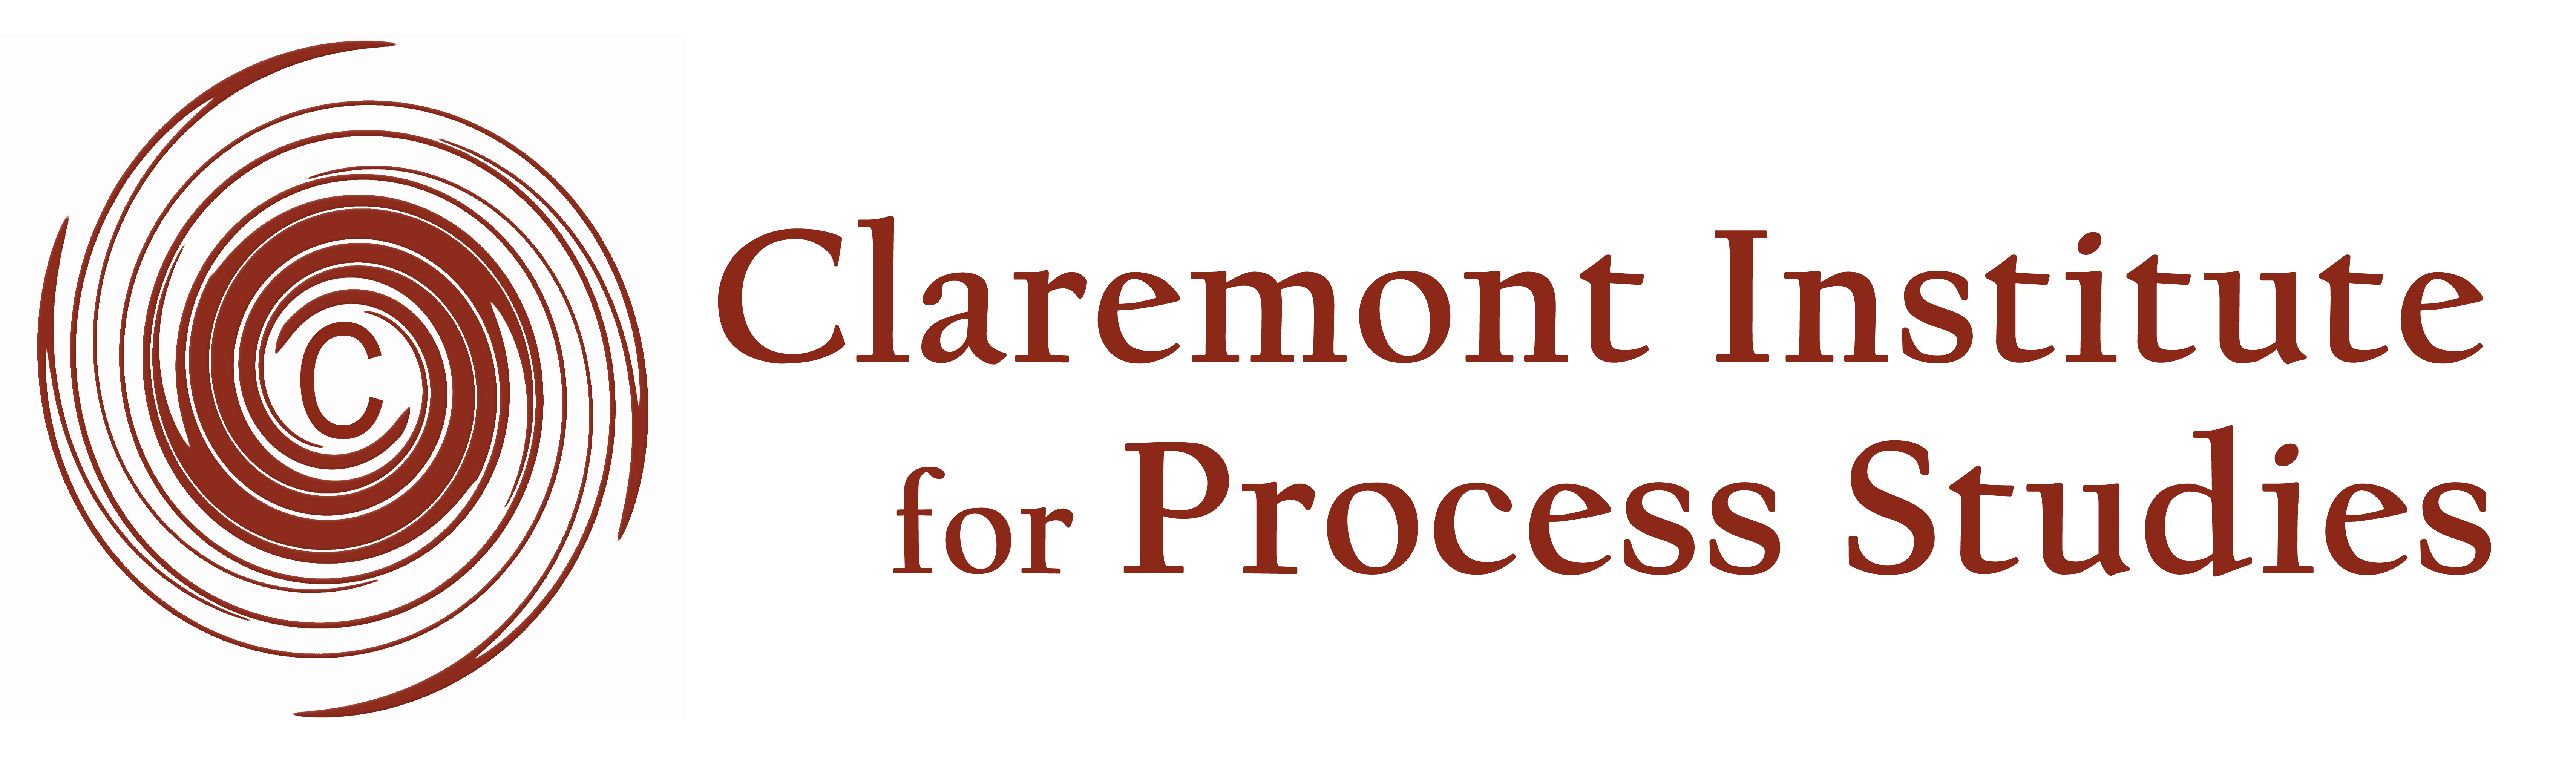 Claremont Institute for Process Studies